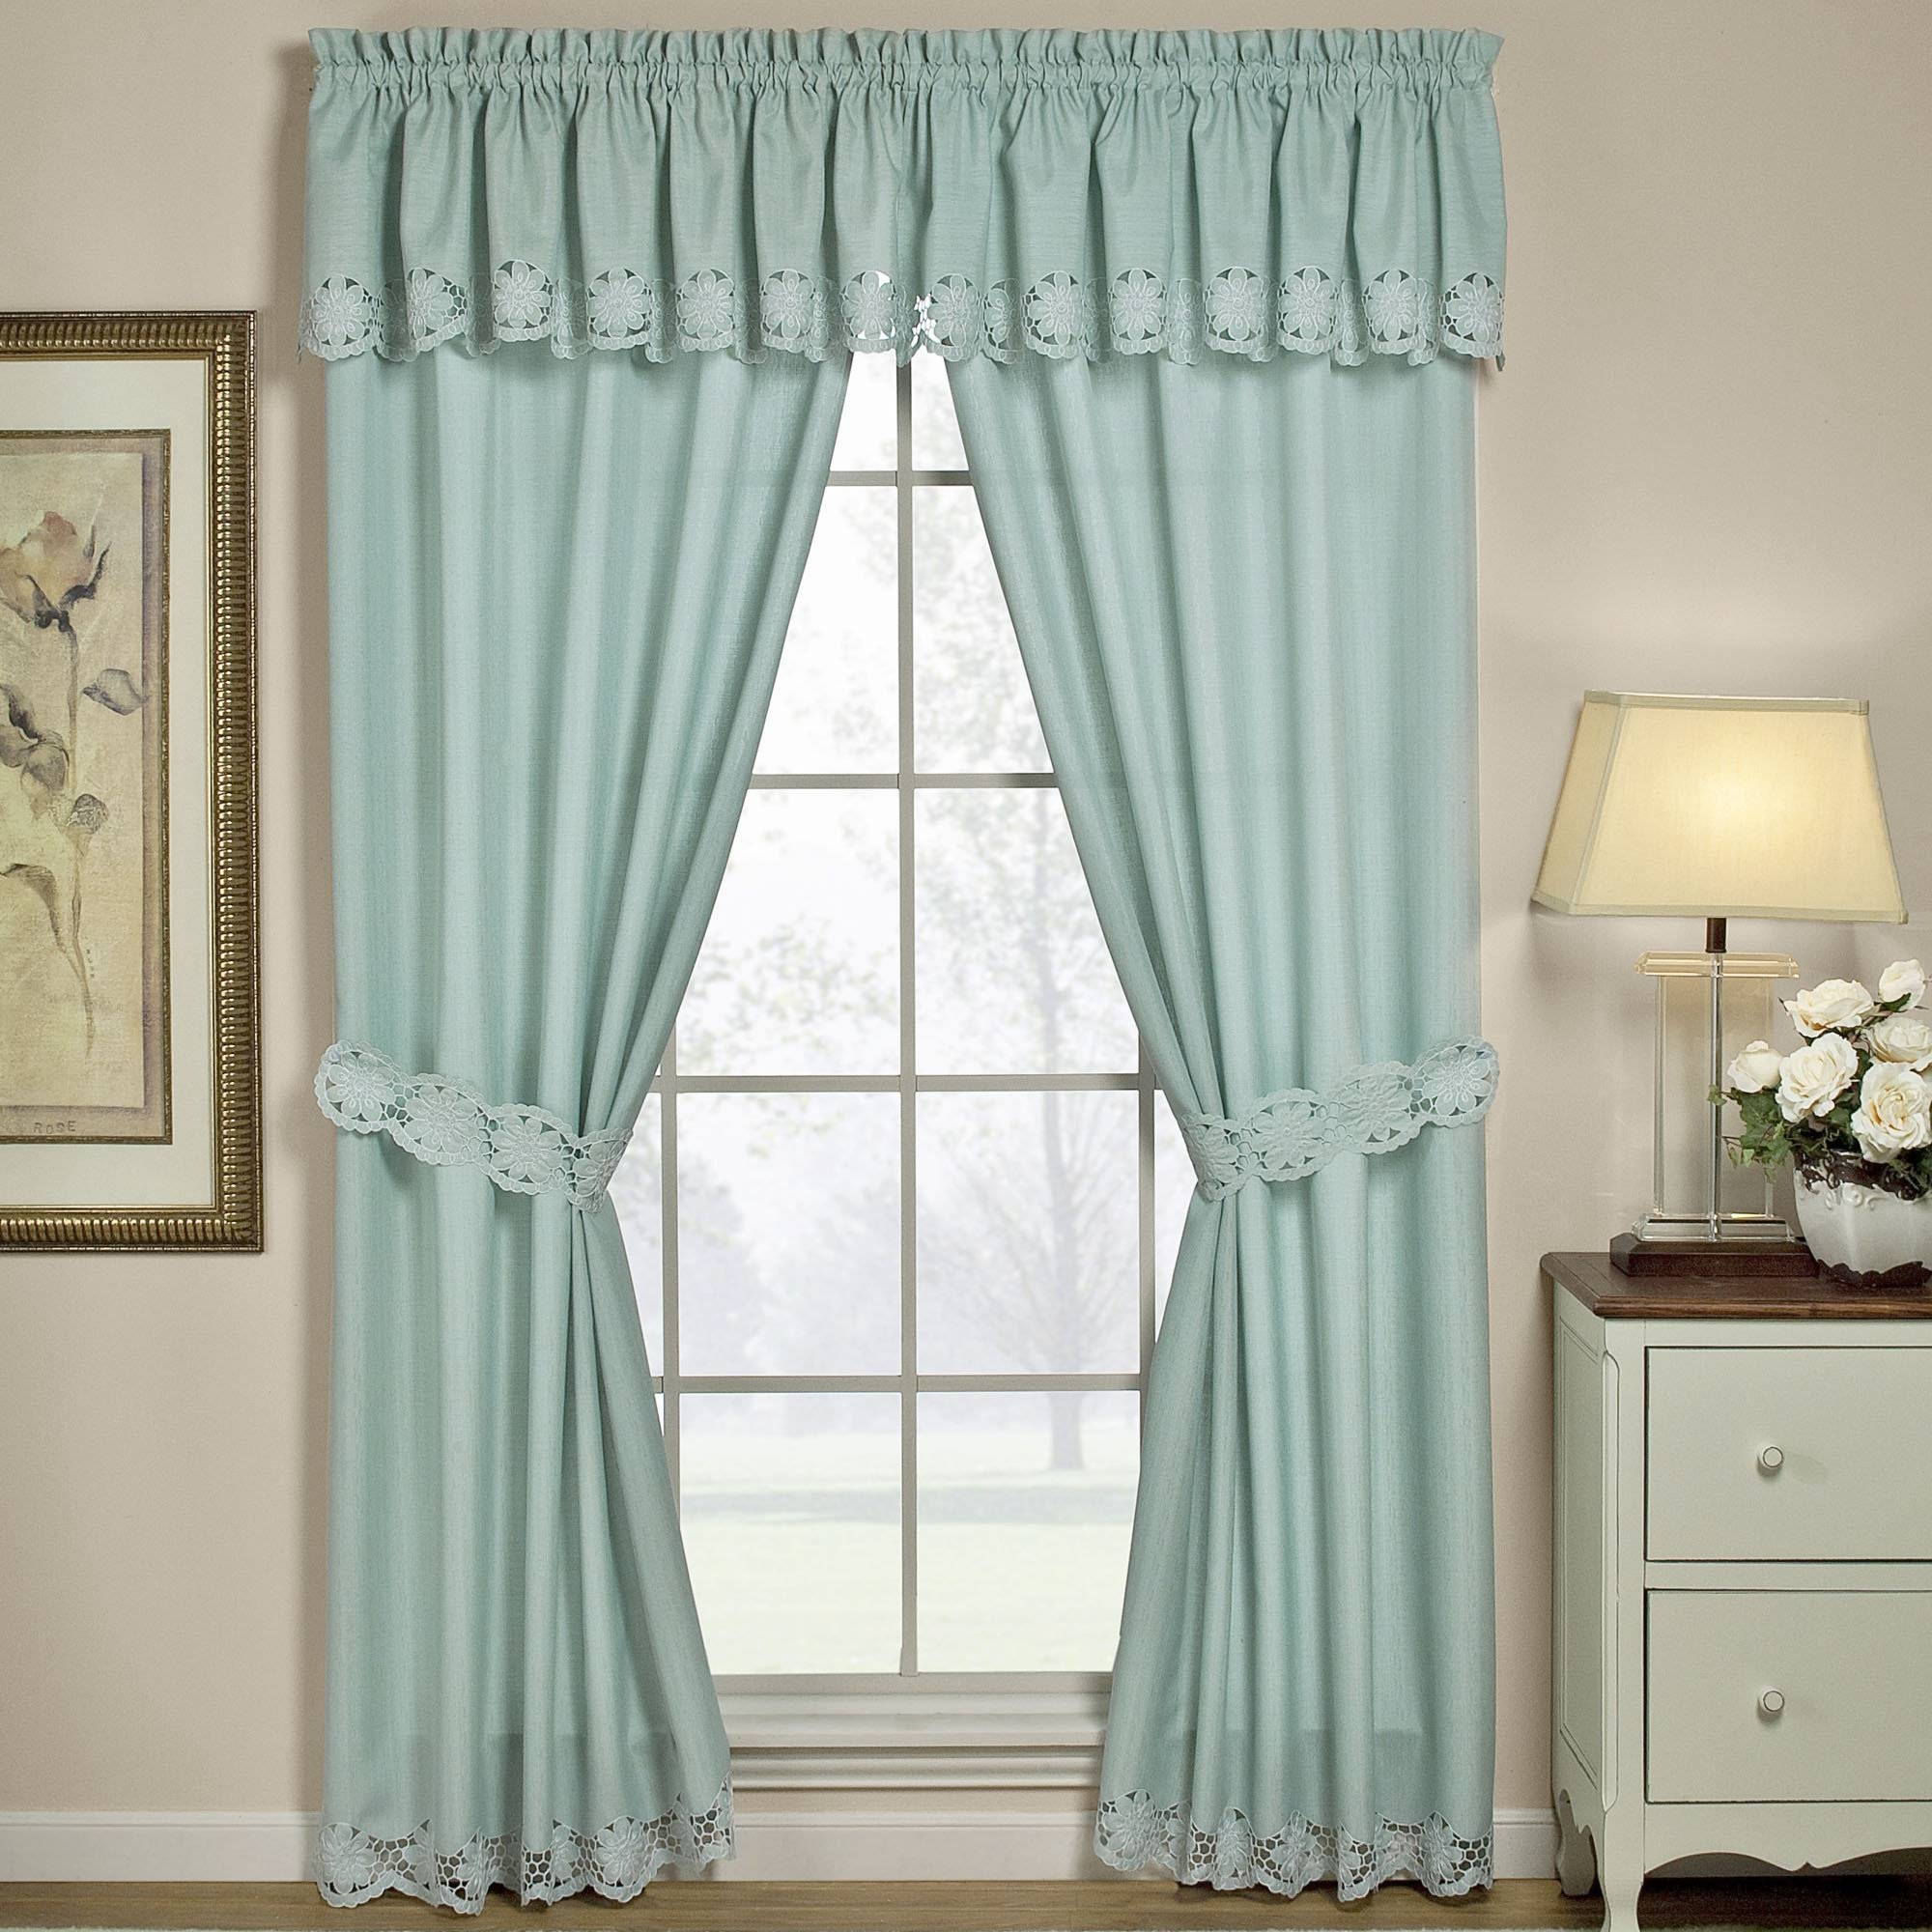 Migliori tessuti per tende scelta tendaggi migliori for Curtains and drapes for bedroom ideas